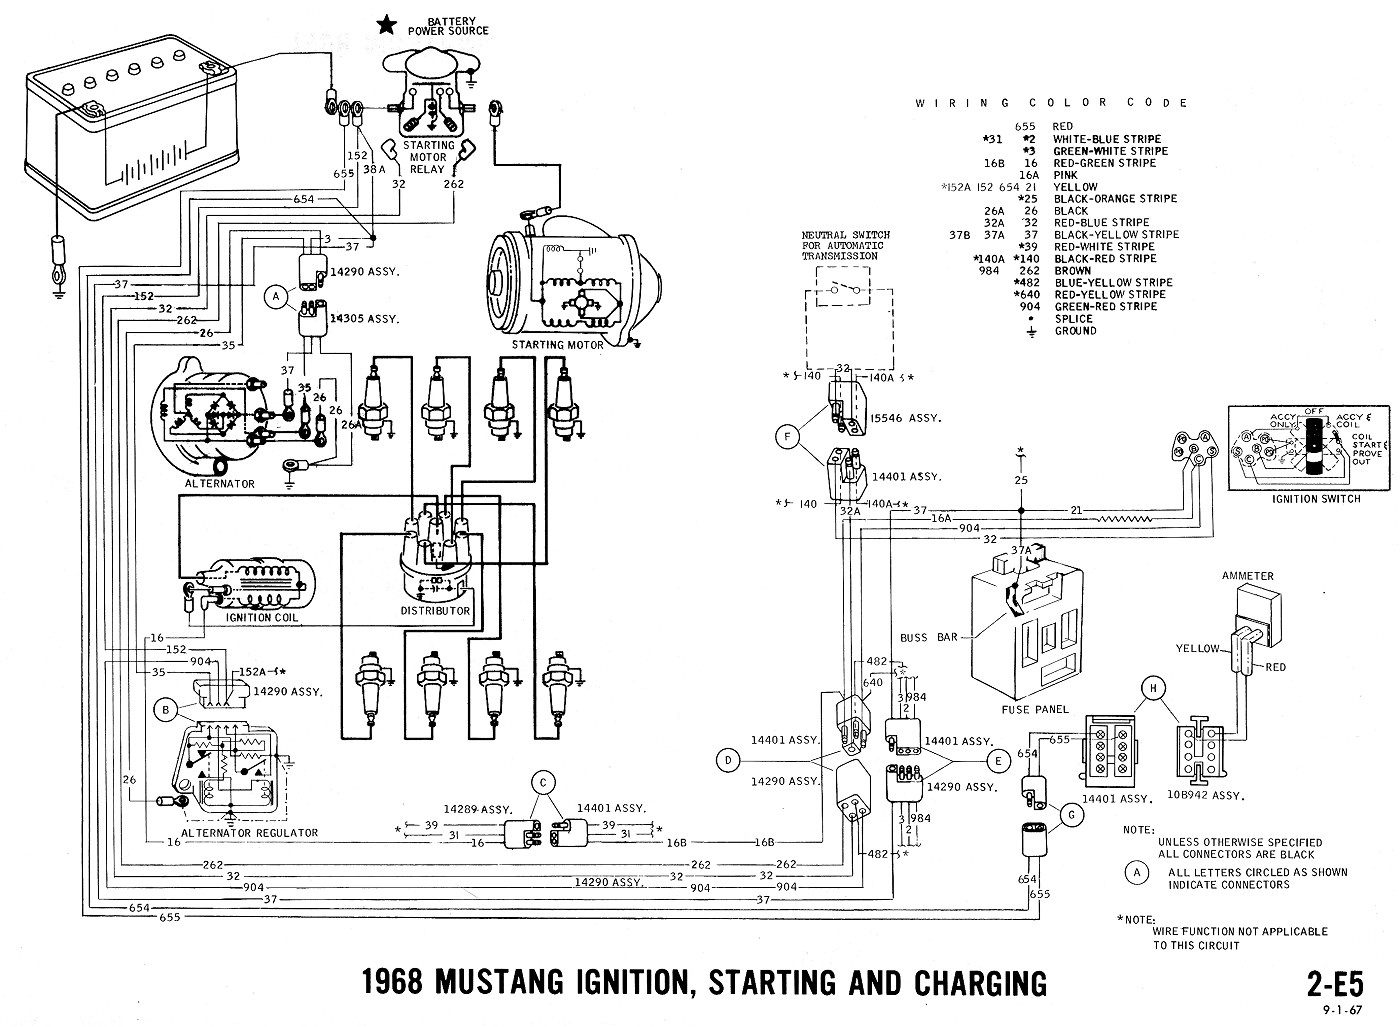 1968 Mustang Wiring Diagrams – Exterior Lights Wiring Diagram 1996 Ford